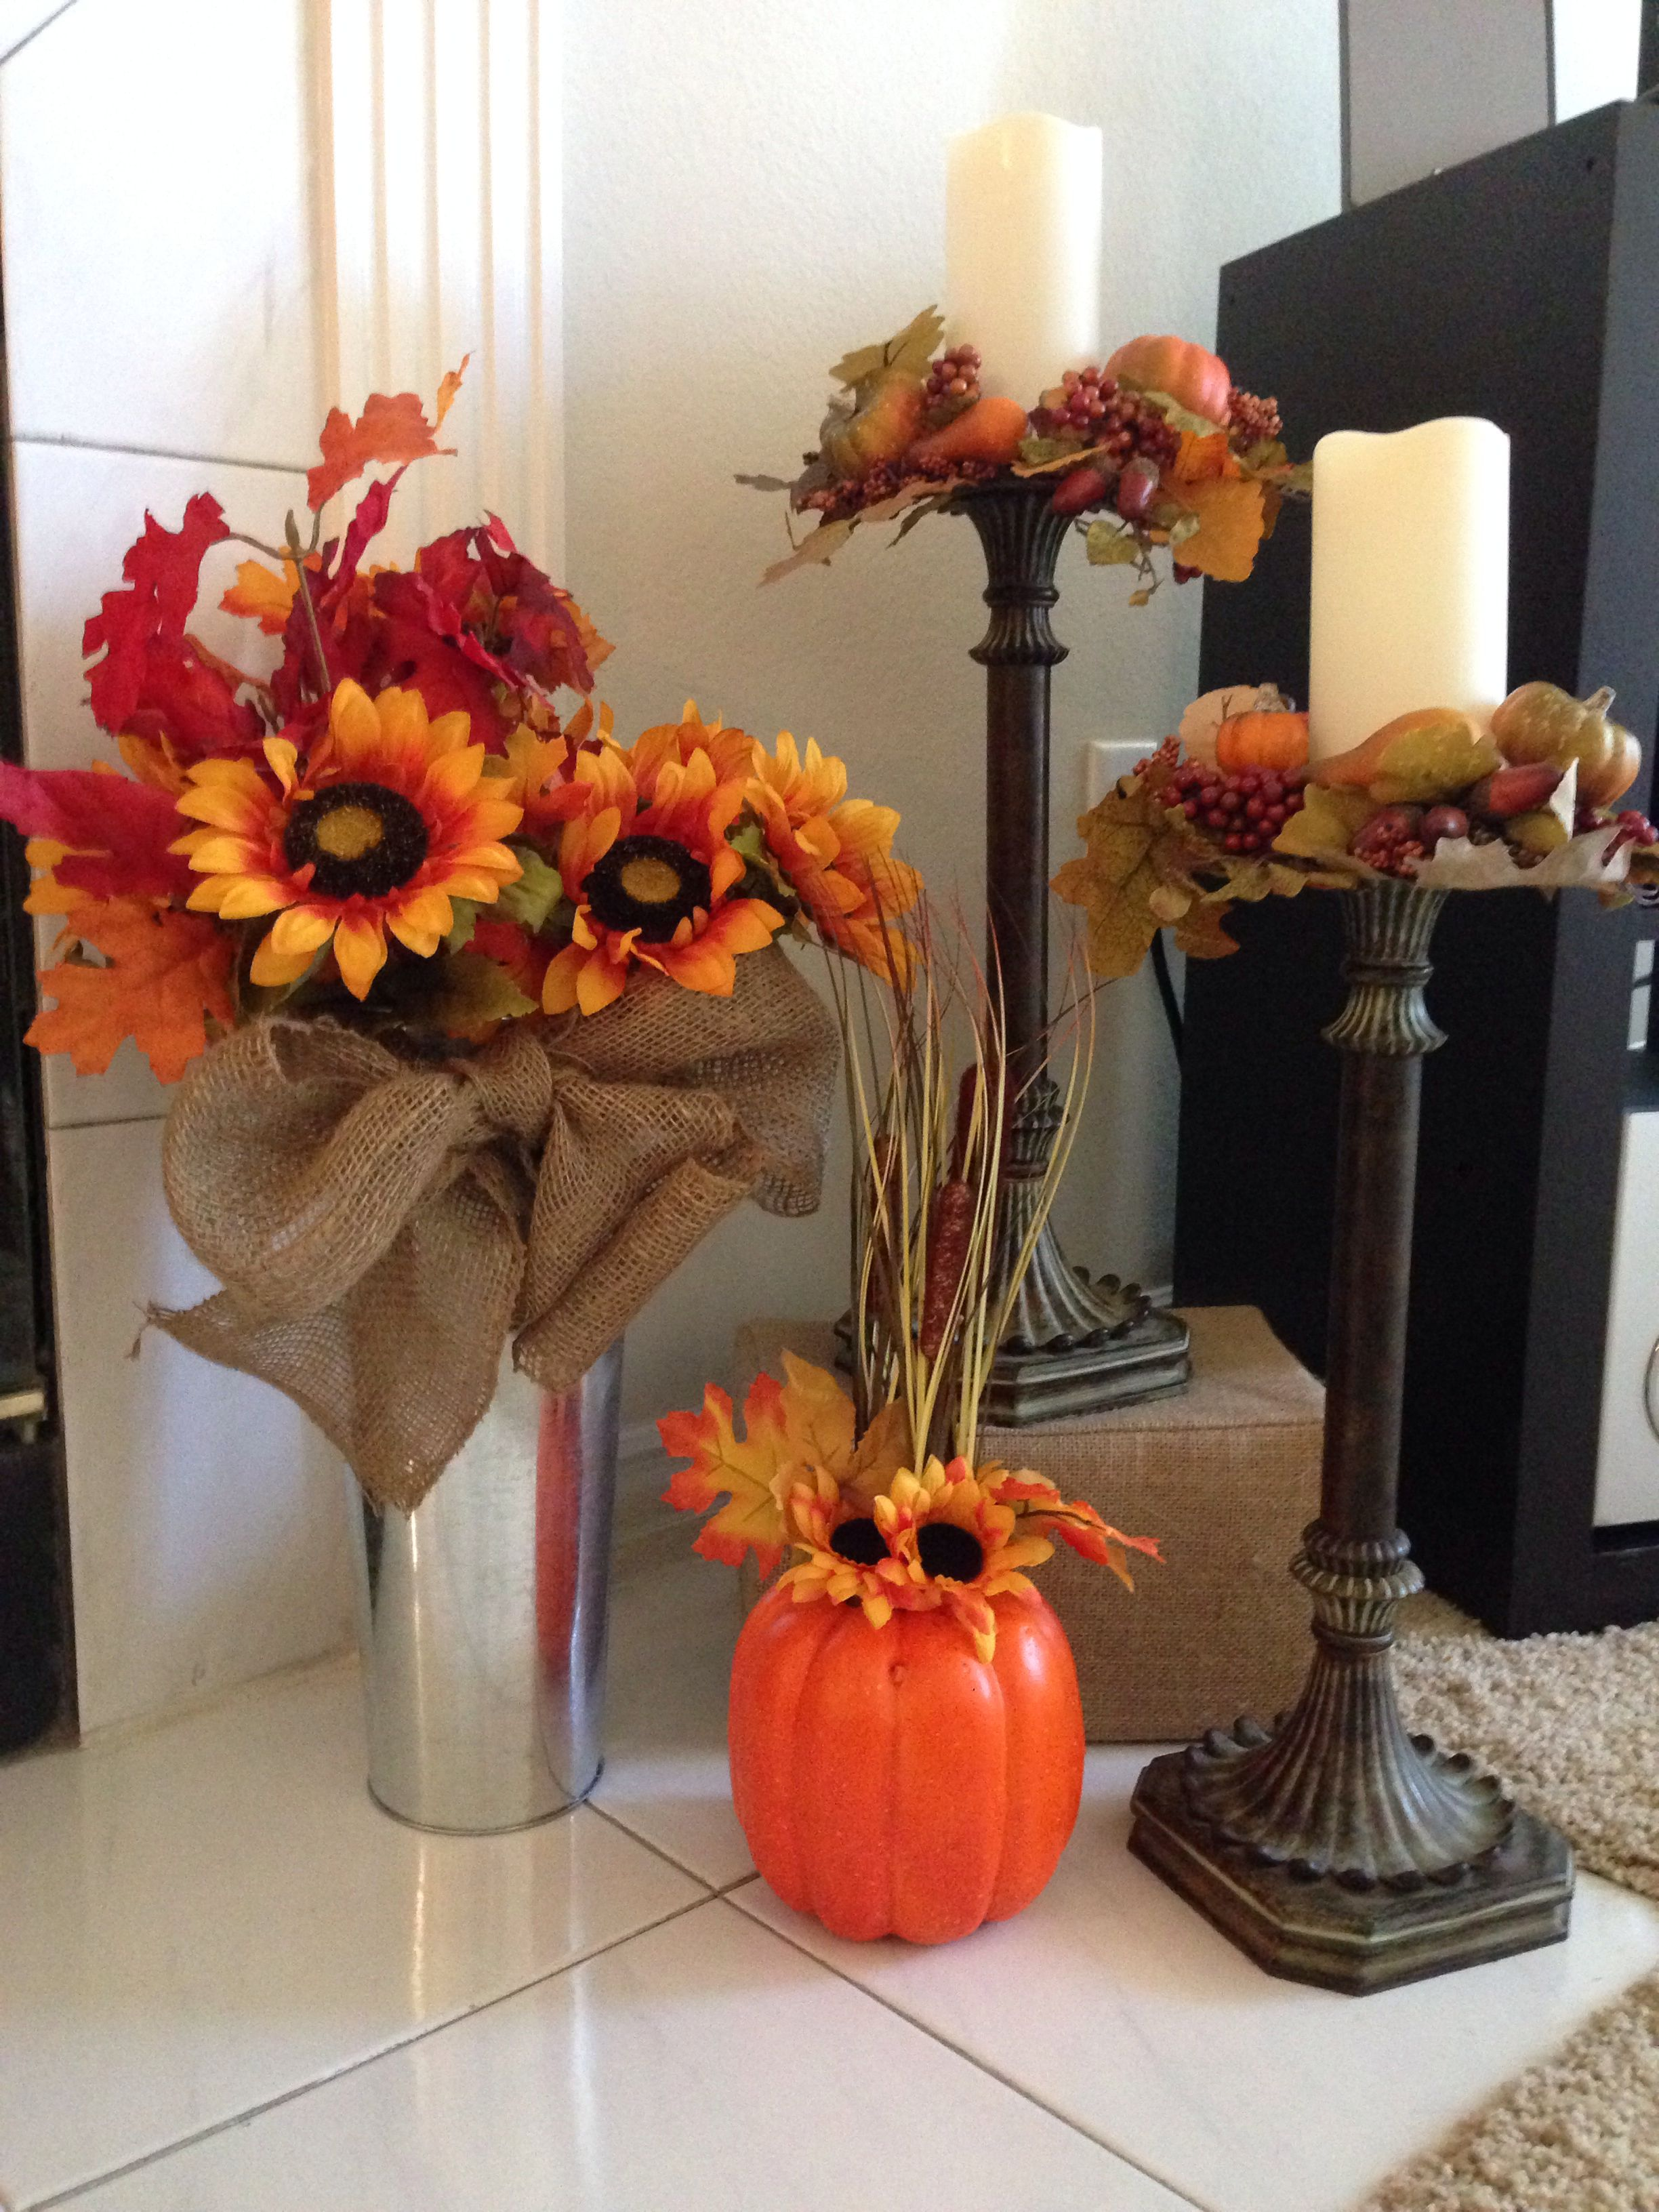 Charmant Fall Decor From Walmart And Hobby Lobby!